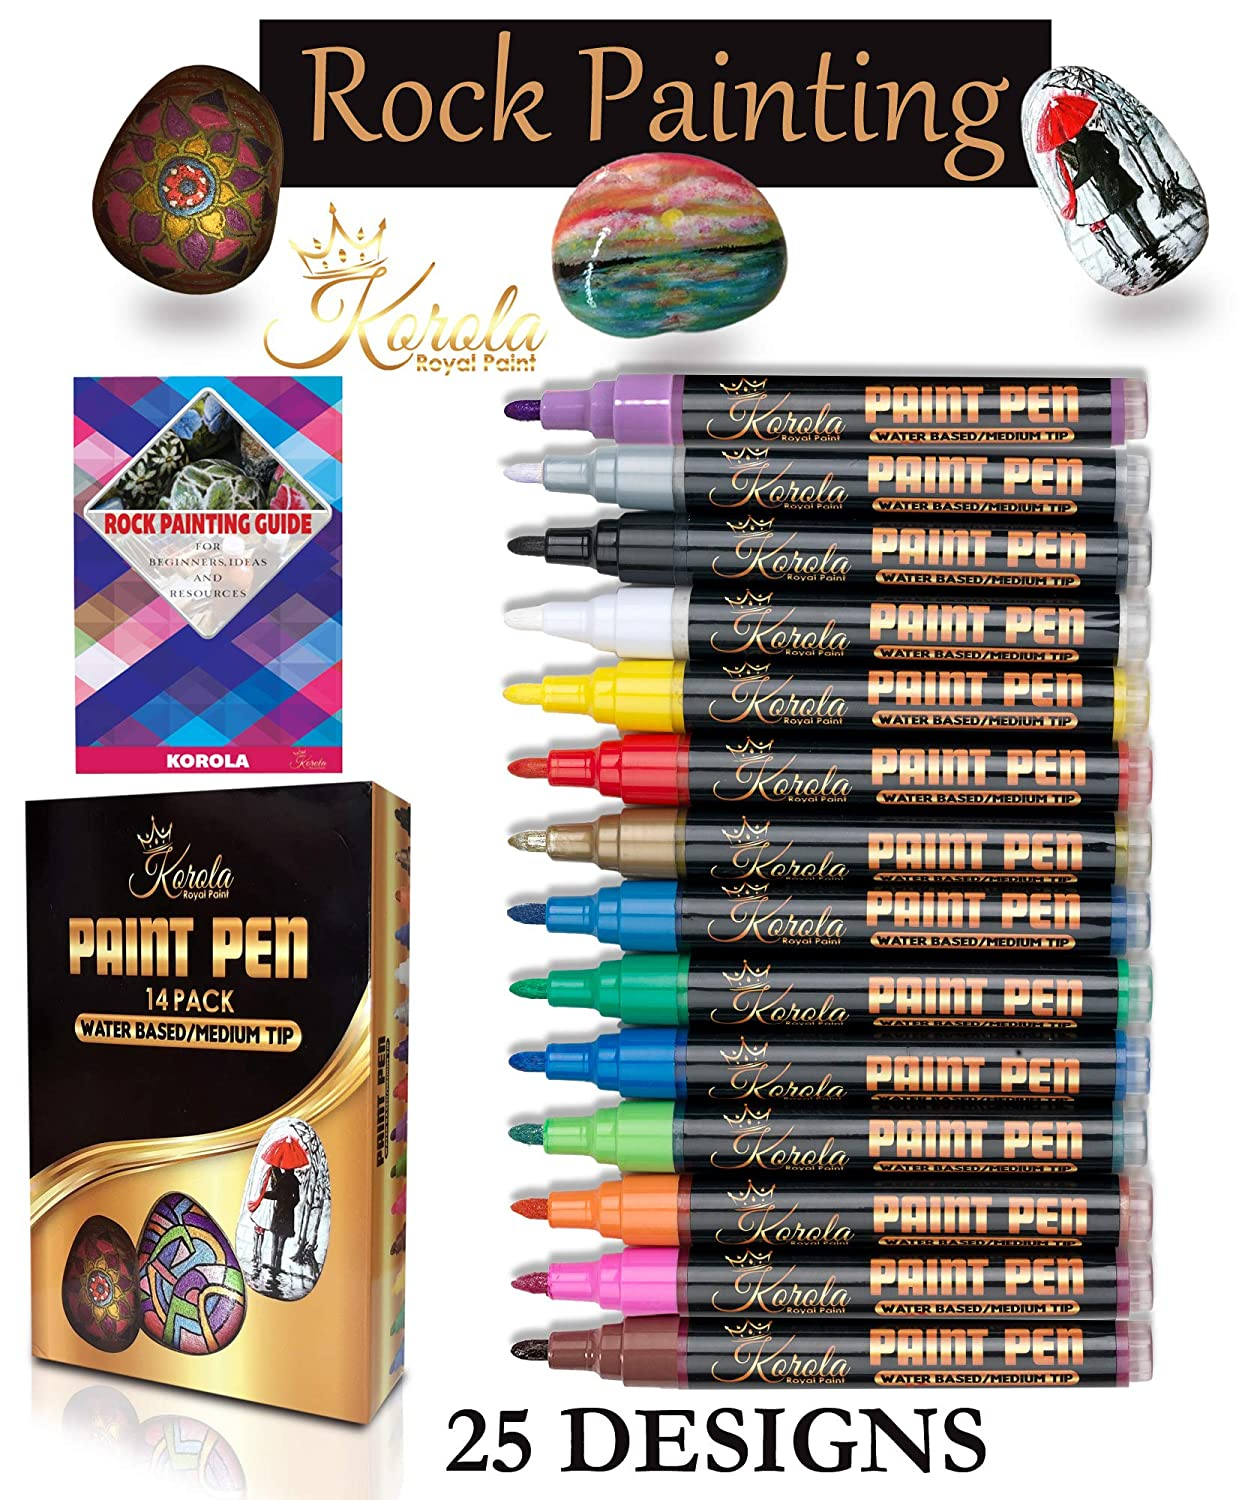 Paint Pens For Rock Painting, Ceramic, Porcelain, Glass, Wood, Metal, Fabric, Canvas And More. Set of 14 Acrylic Paint Markers Medium Tip